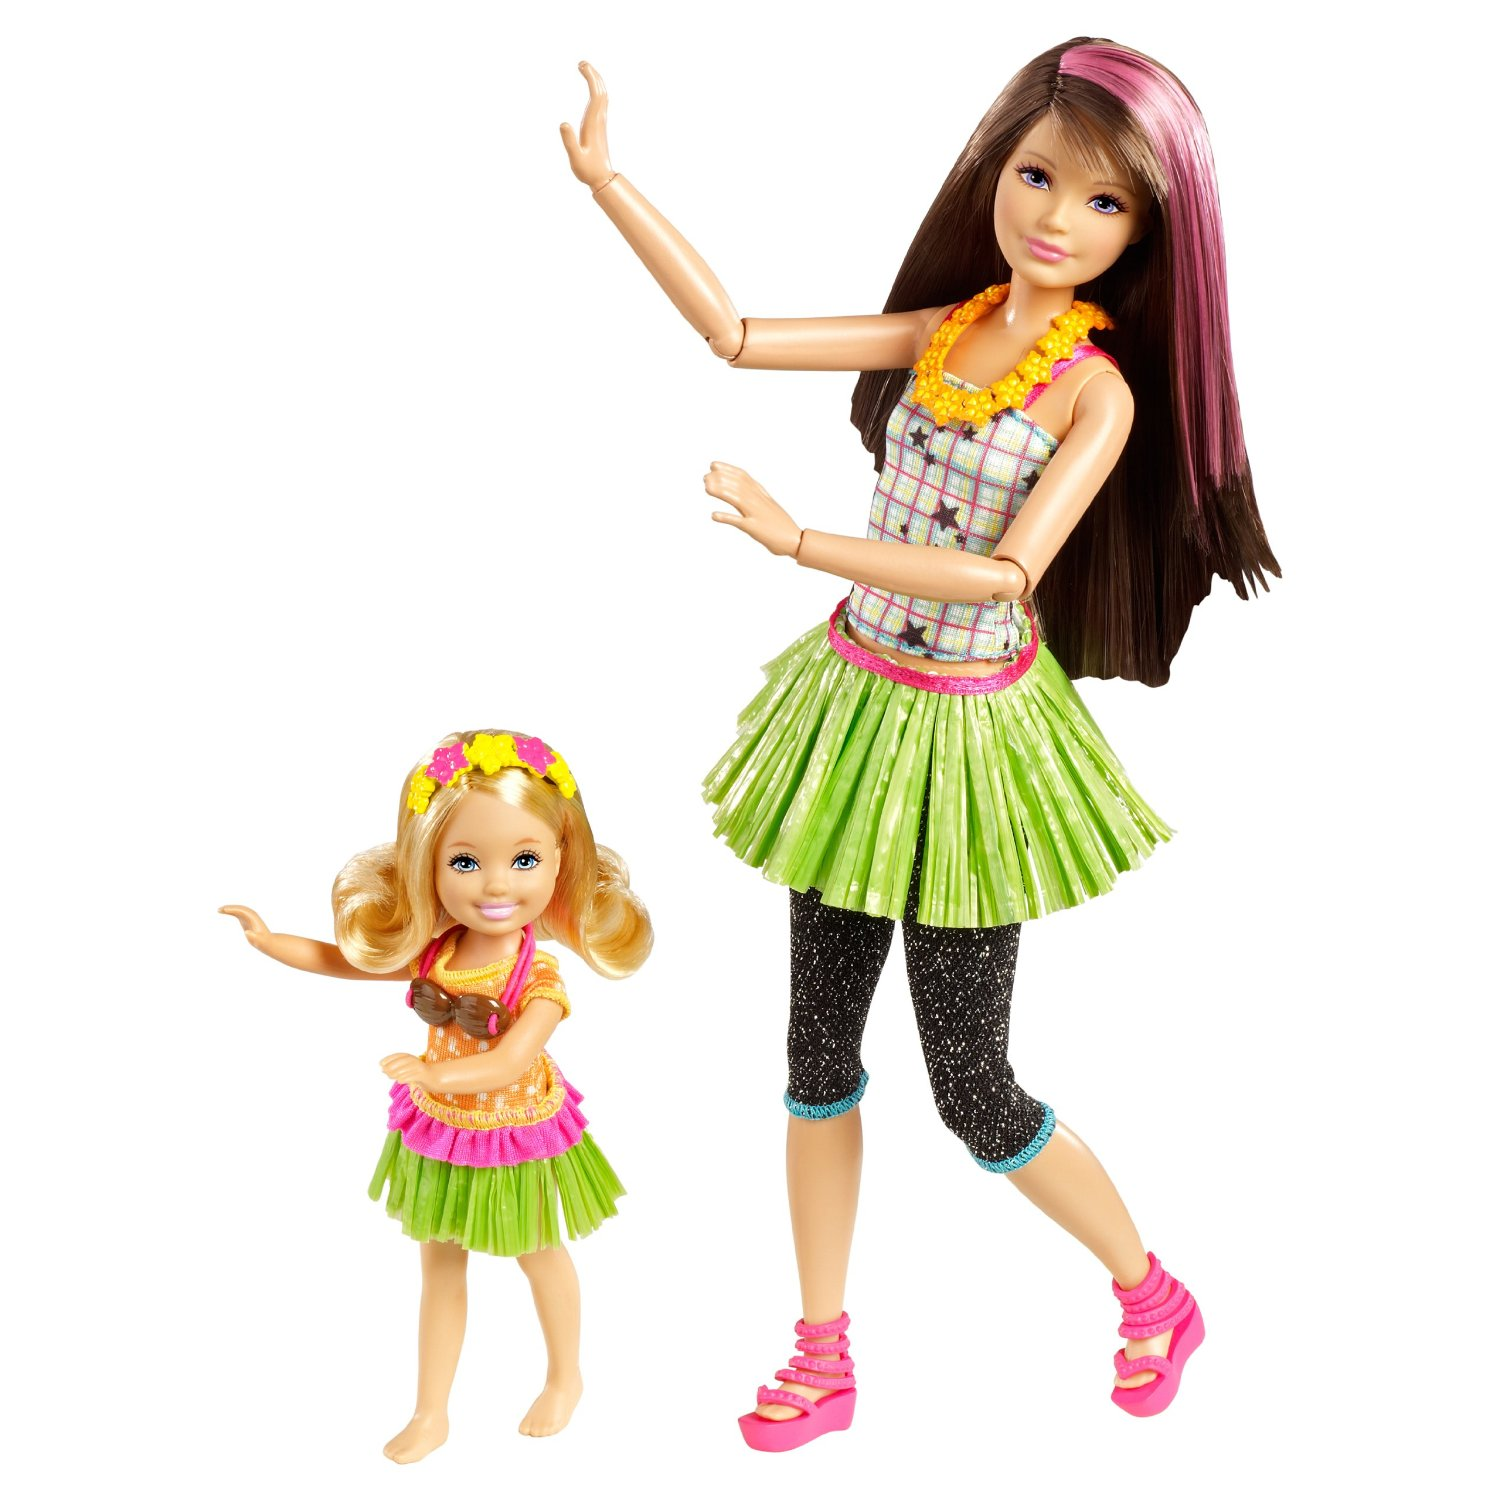 Barbie___________508006bde00a5